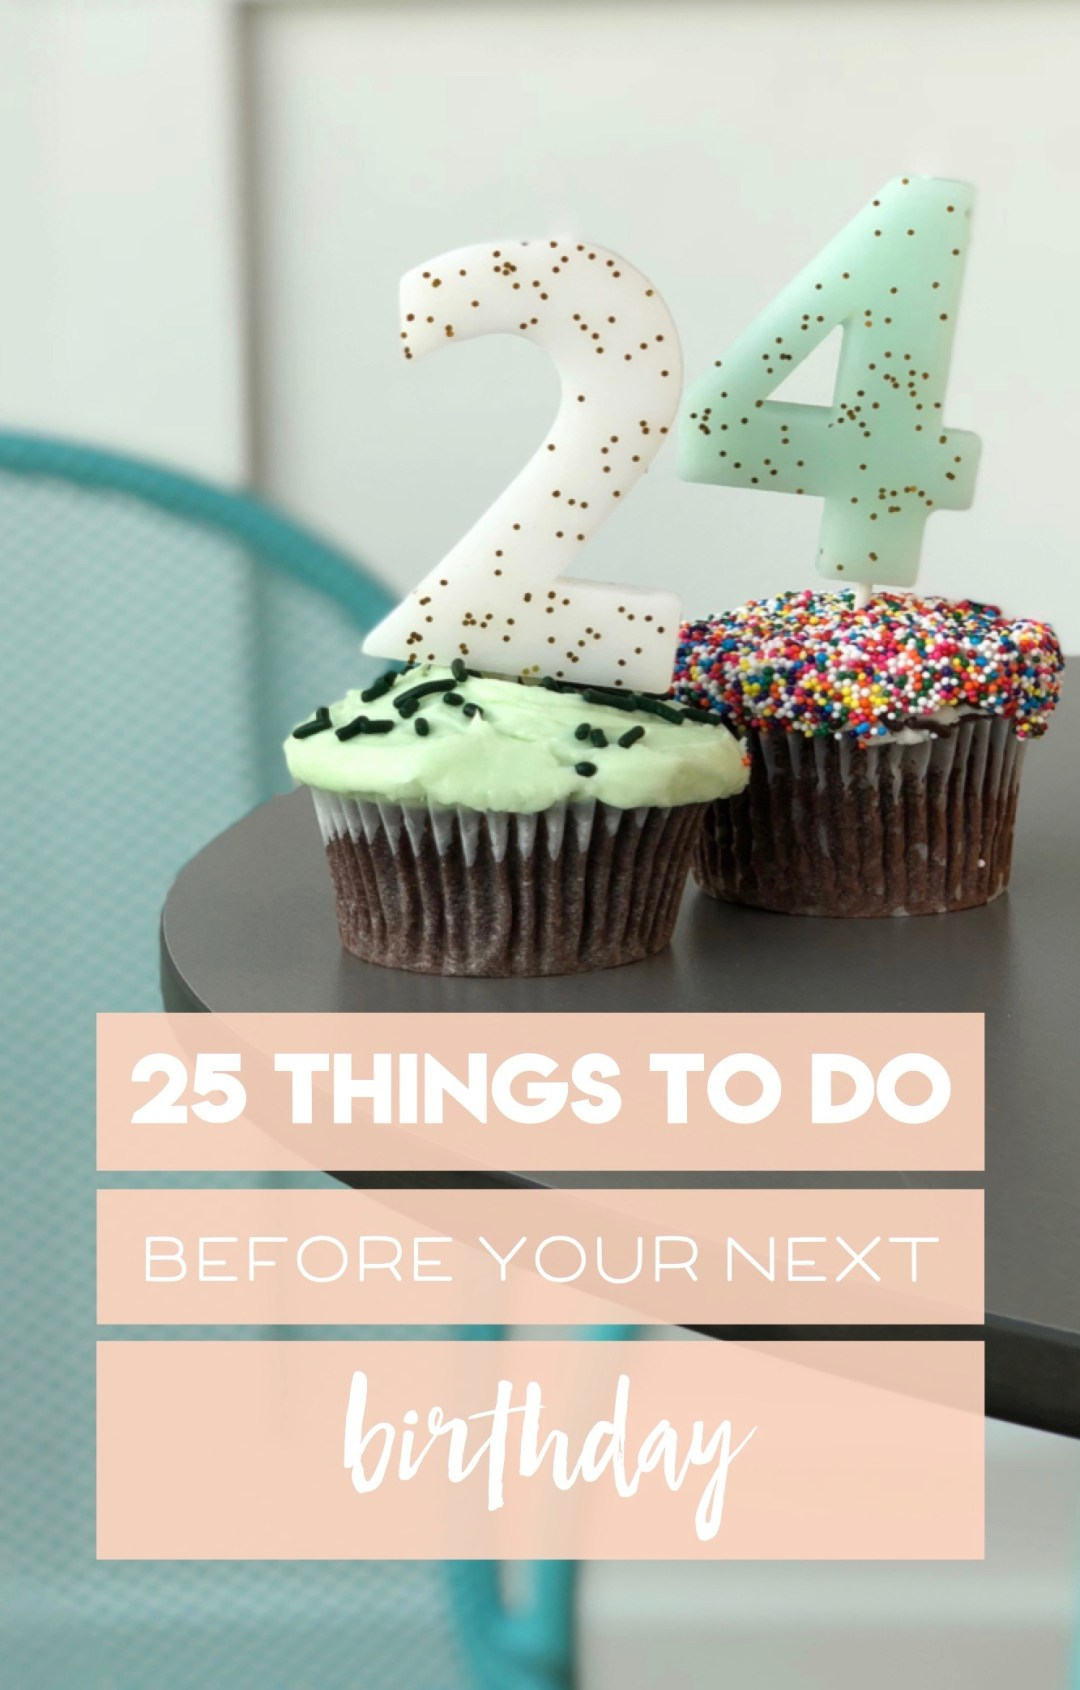 a bucket list for my 25th year // random acts of kindness, steps towards my dreams